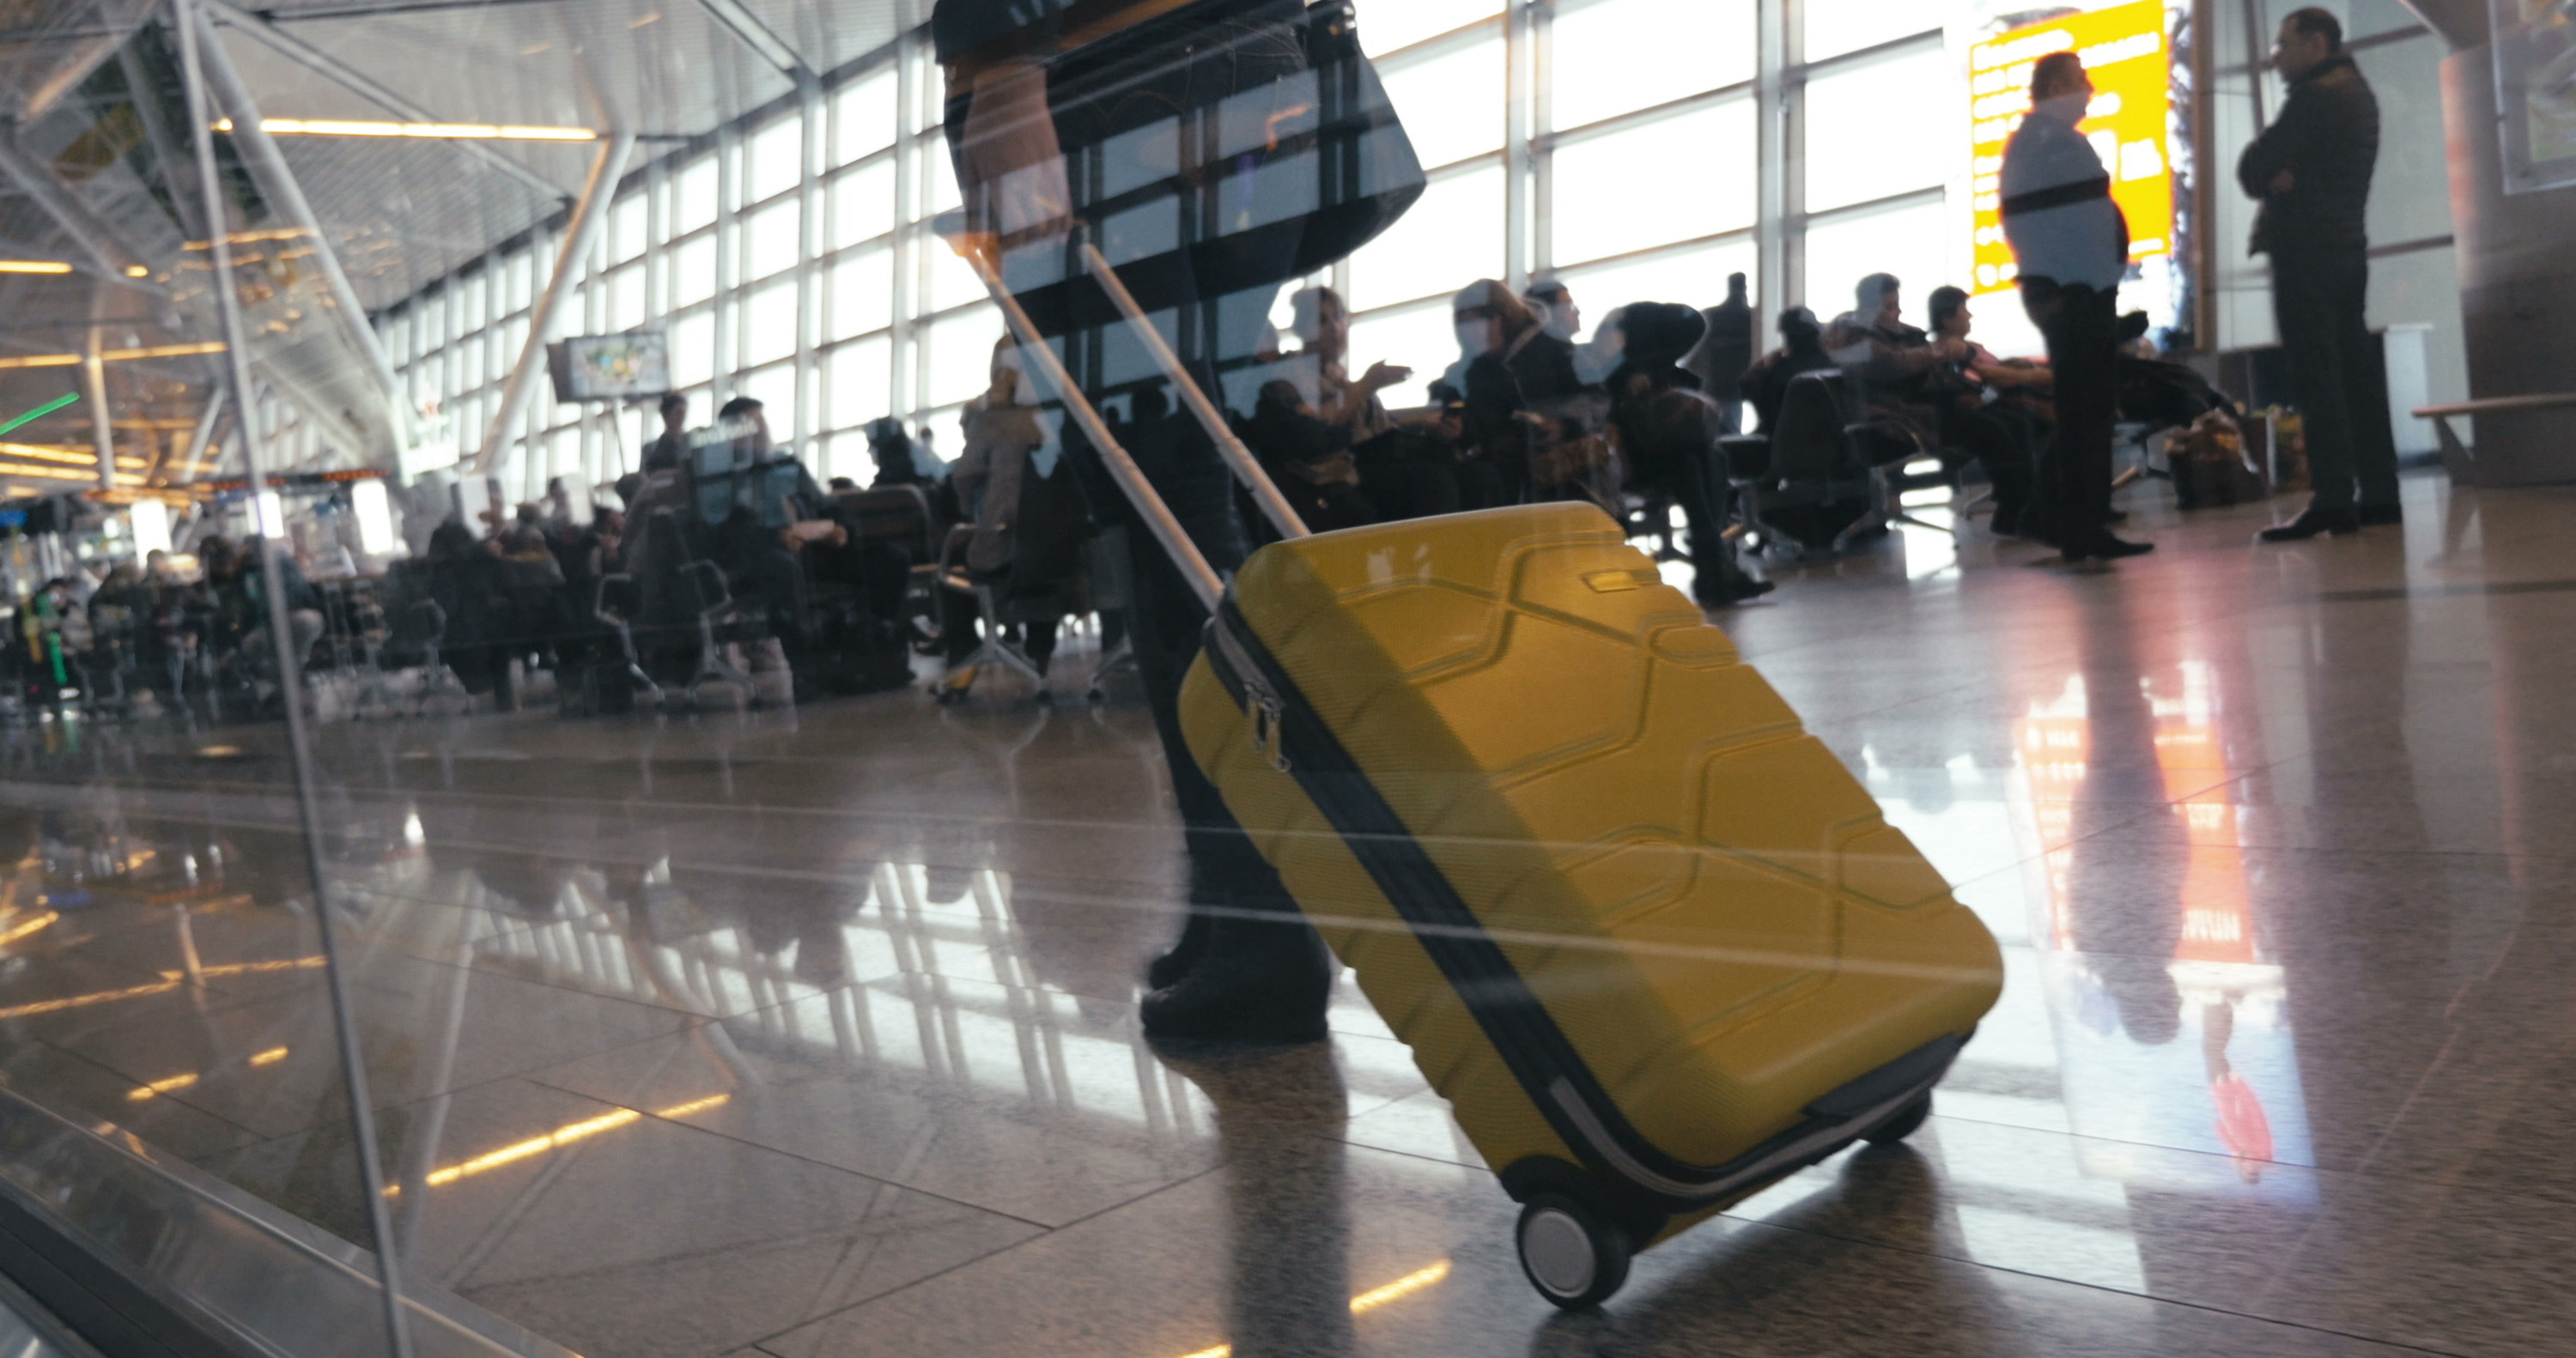 A person walking with luggage